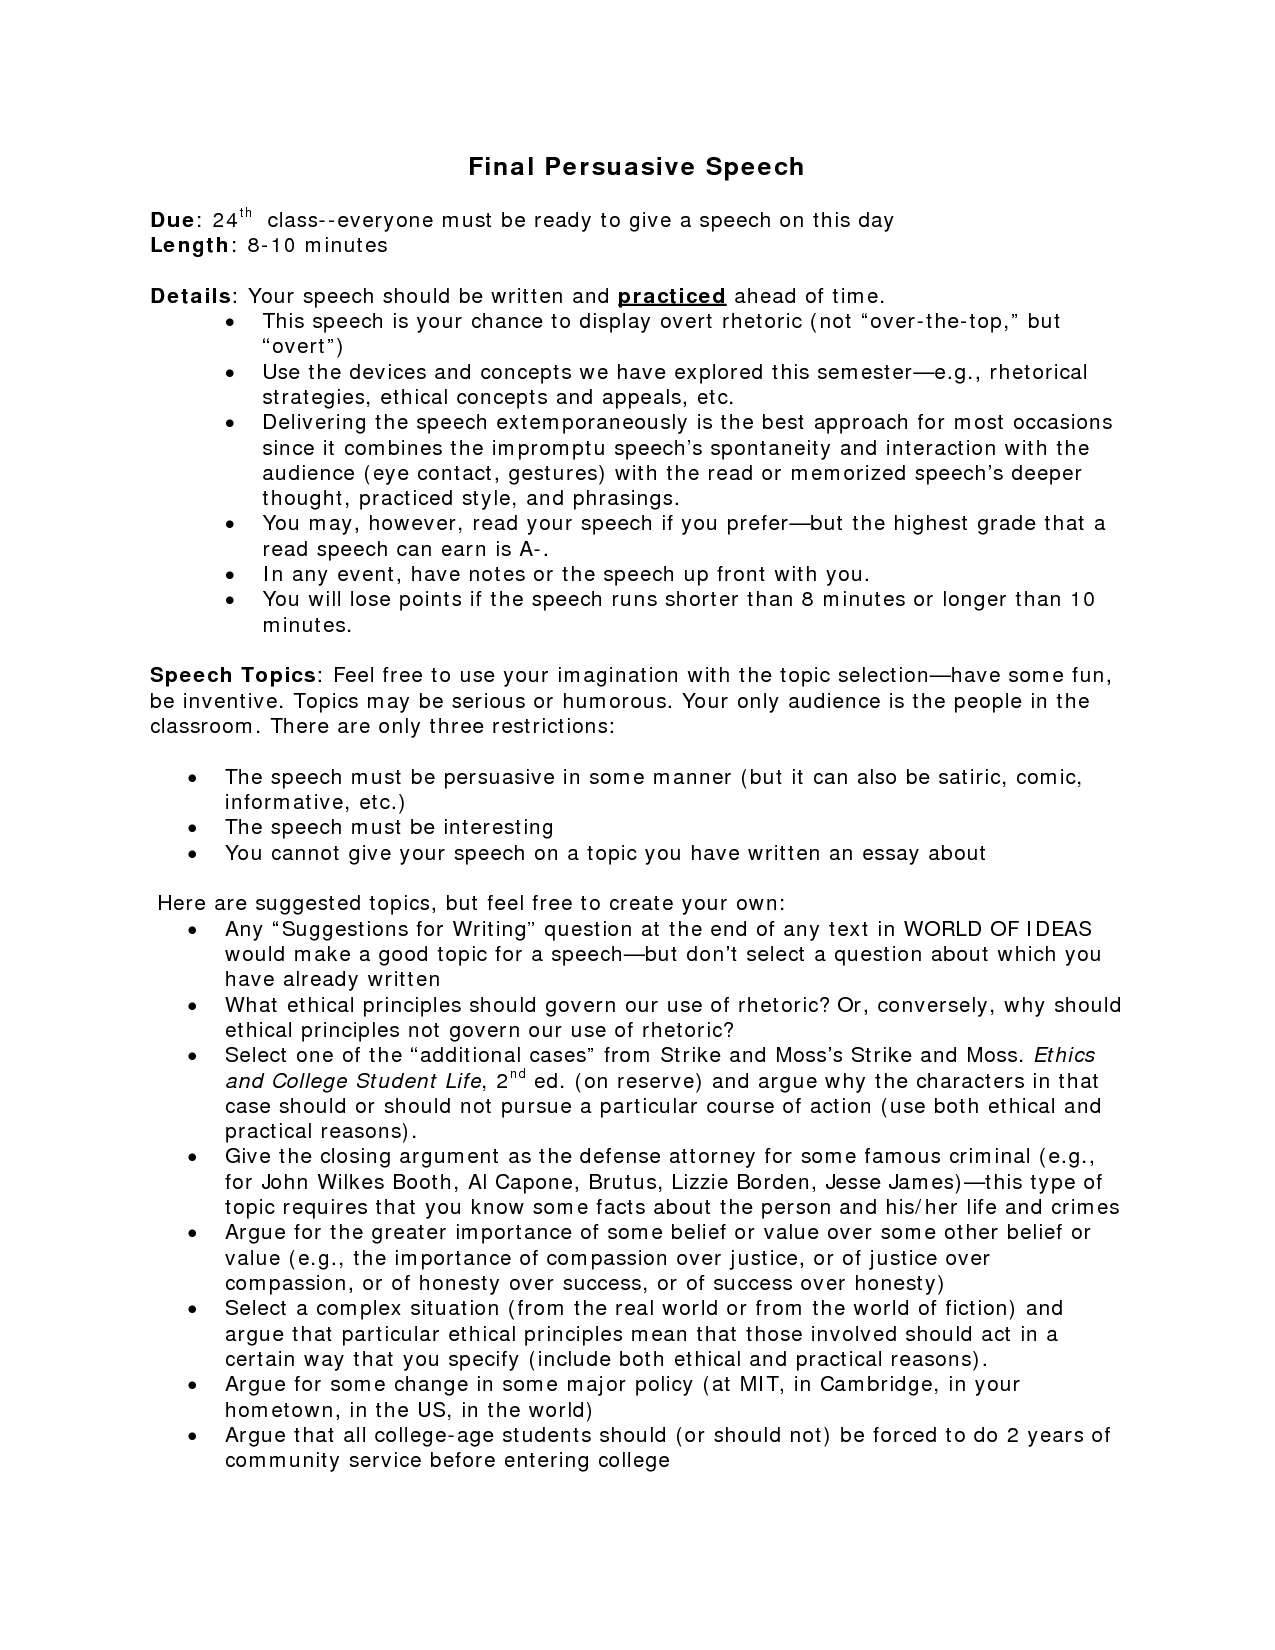 007 Persuasivessay Topics For College Writings Andssays Middle School To Write About Narrativexample Re Science Argumentative Good Paper Informative Listxpository Amazing Persuasive Essay High Full